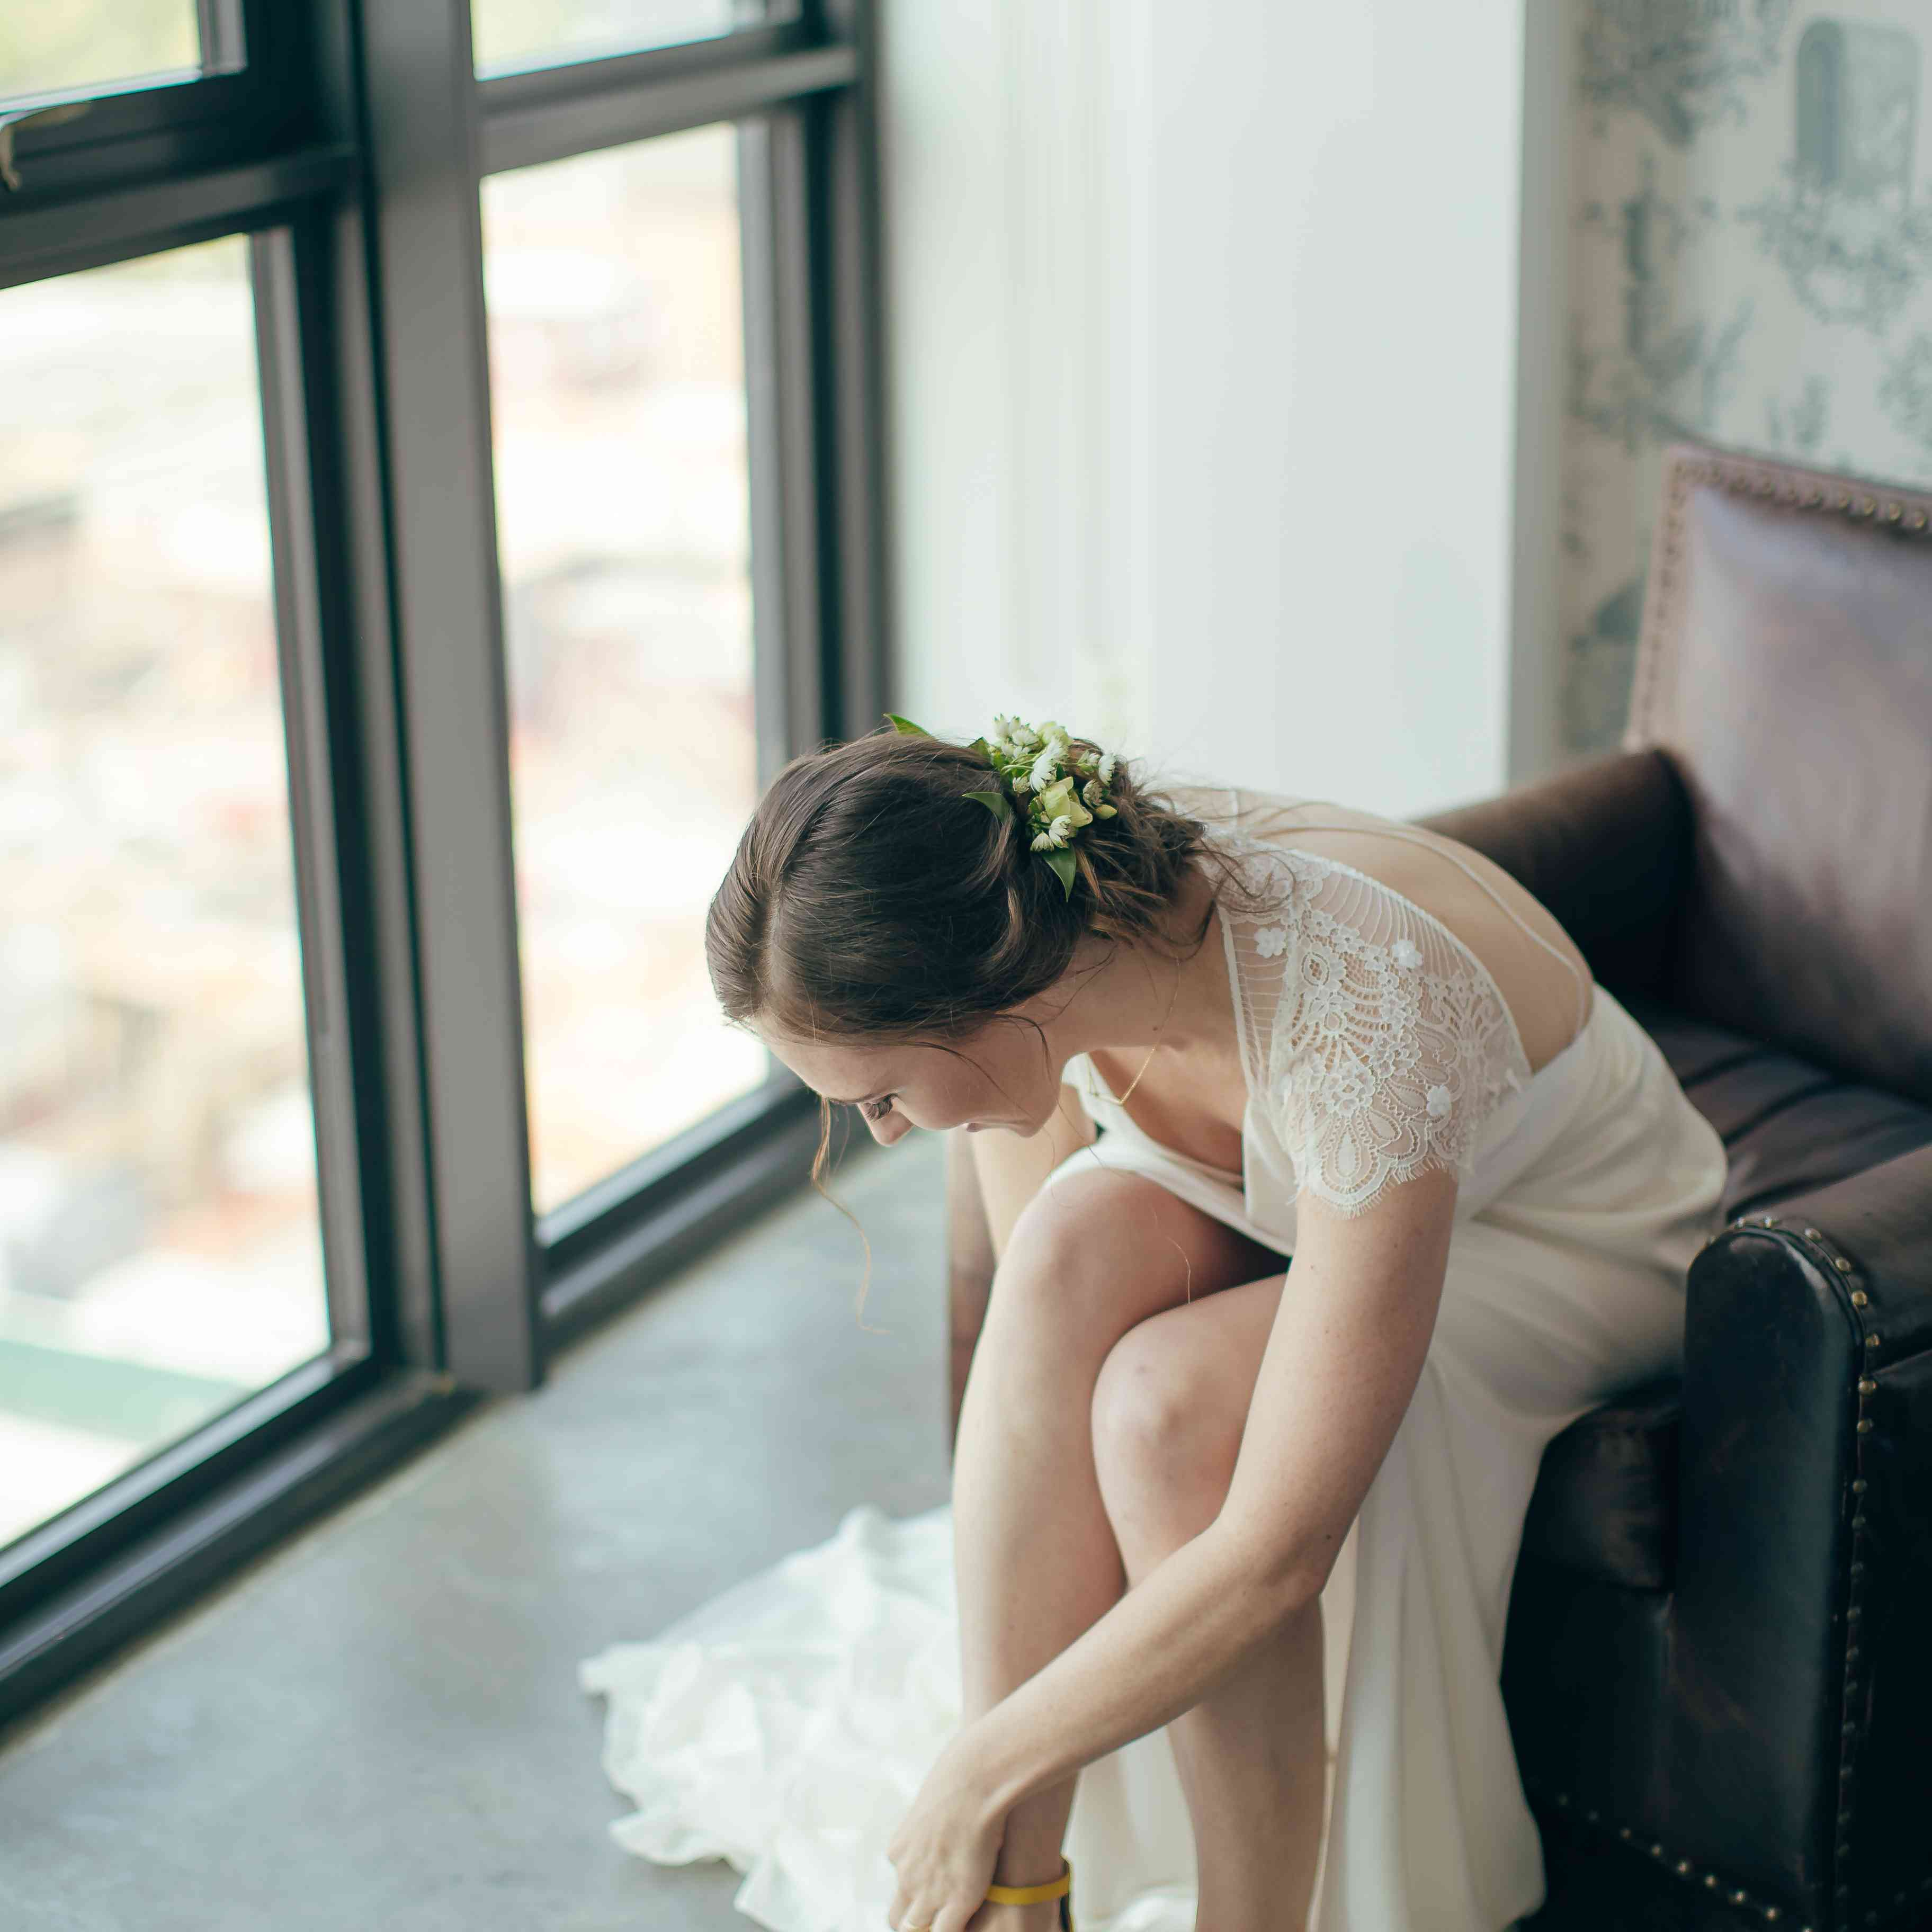 Bride putting yellow shoes on